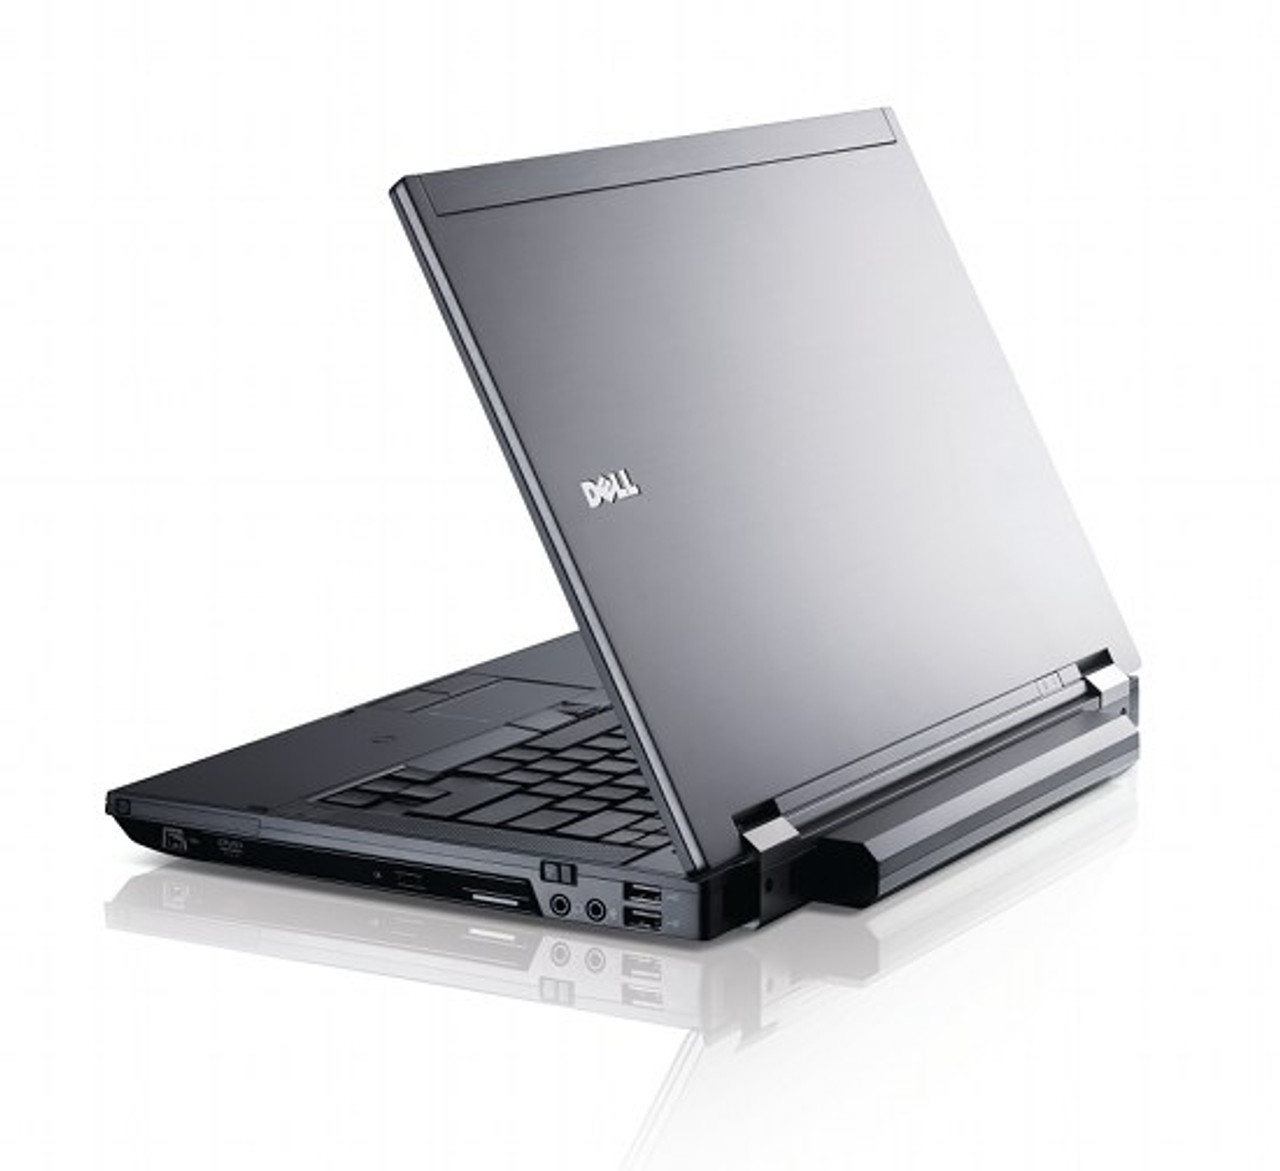 Dell Latitude E6410 Laptop Core i5 2.4GHz, 4GB Ram, 160GB HDD, DVD-RW, Windows 7 Pro 64 Notebook